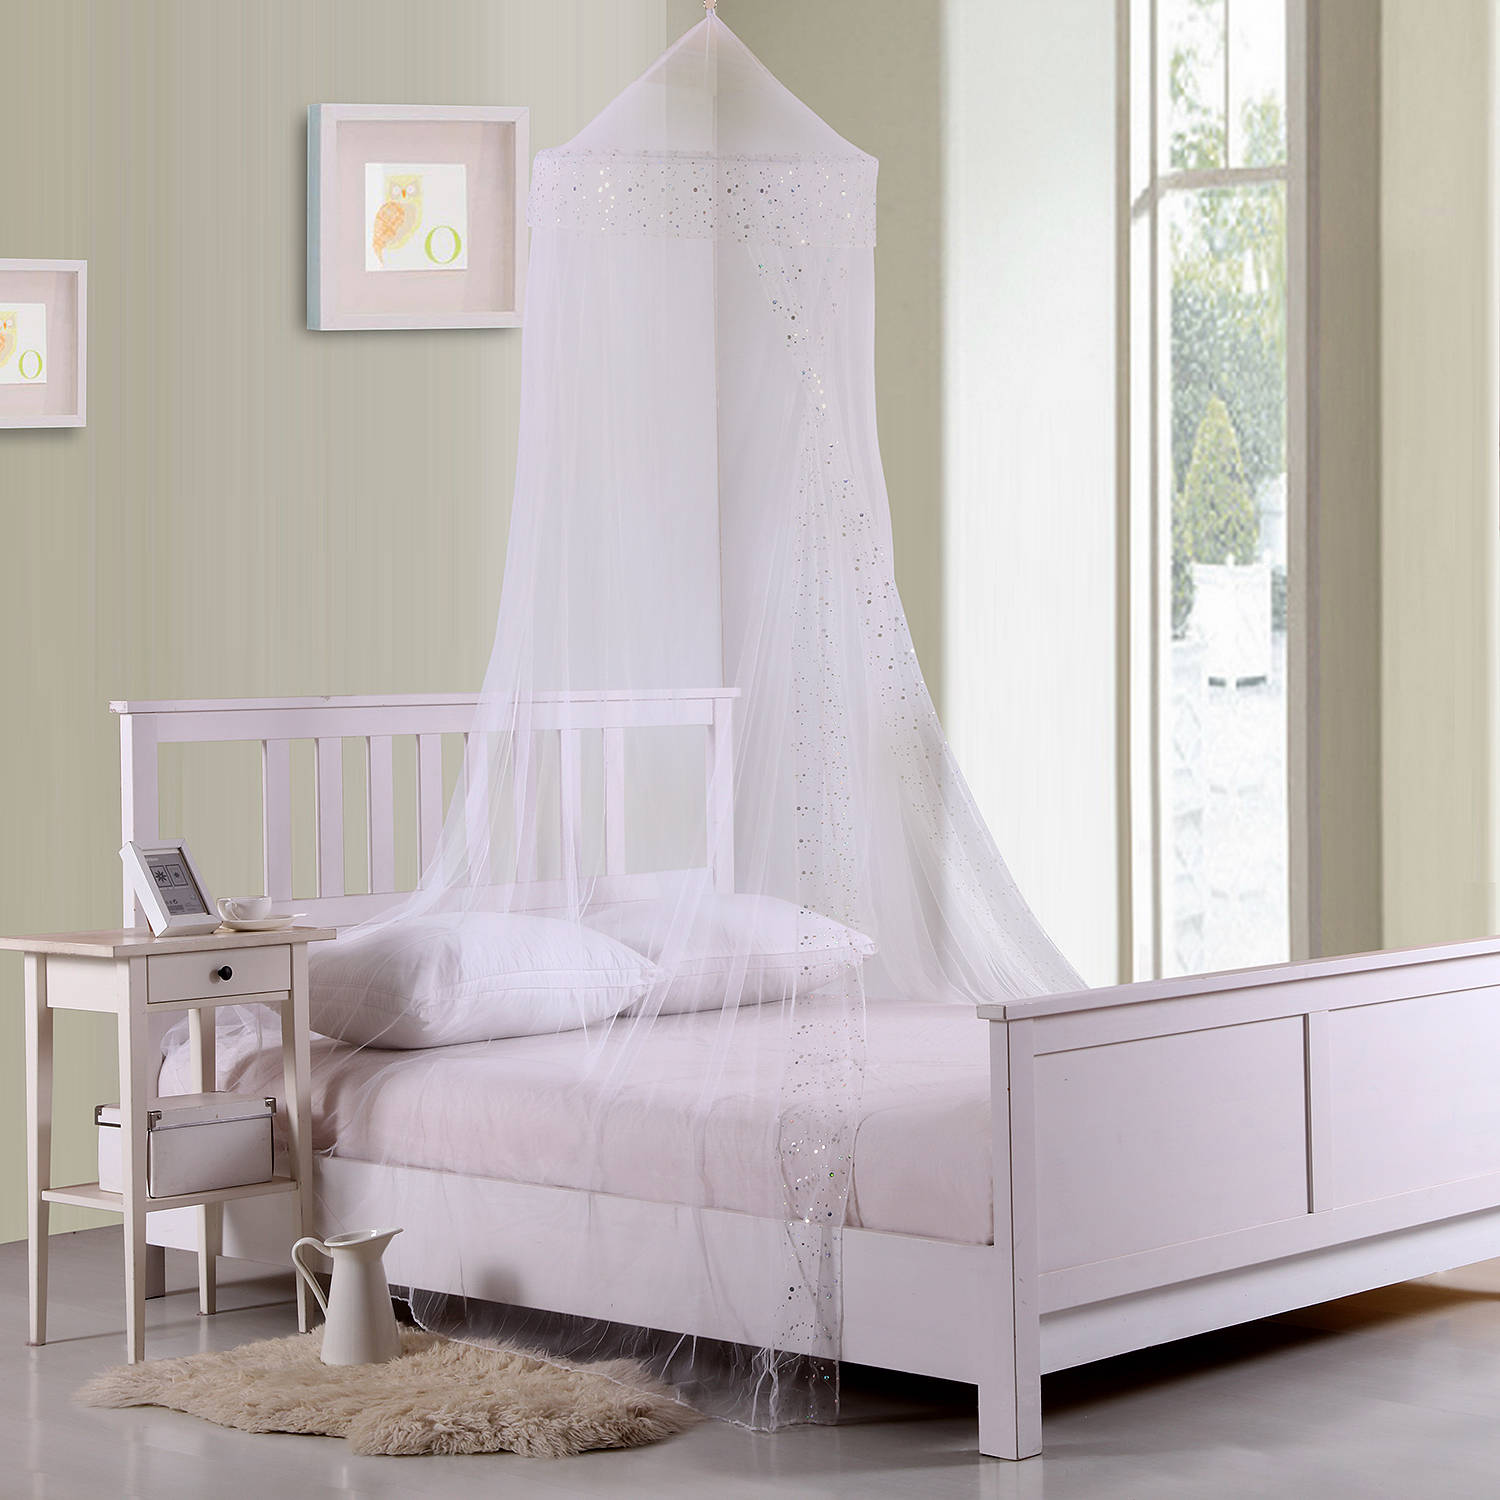 Kids Galaxy Collapsible Hoop Sheer Mosquito Net Bed Canopy